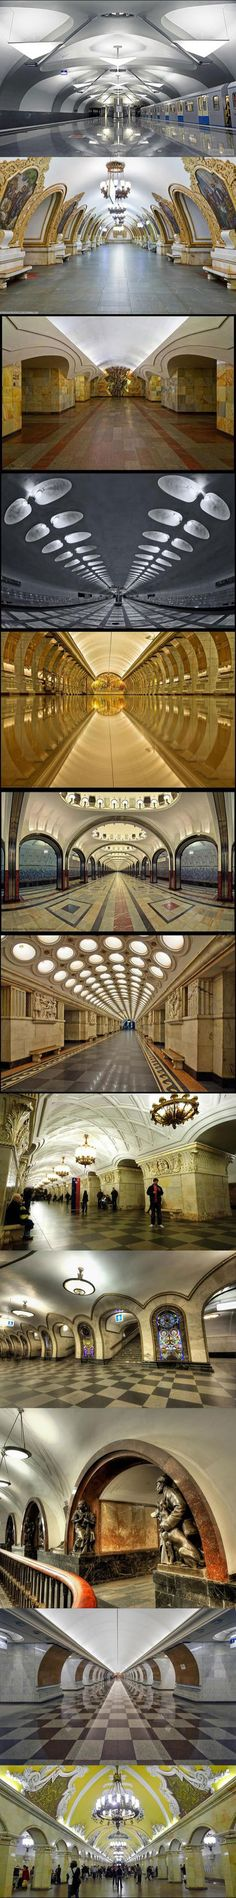 "Bucket list No 5 visit Moscow and ride the metro to all the stations described in the ""Metro 2033"" story. And also enjoy the beauty of those stations!"